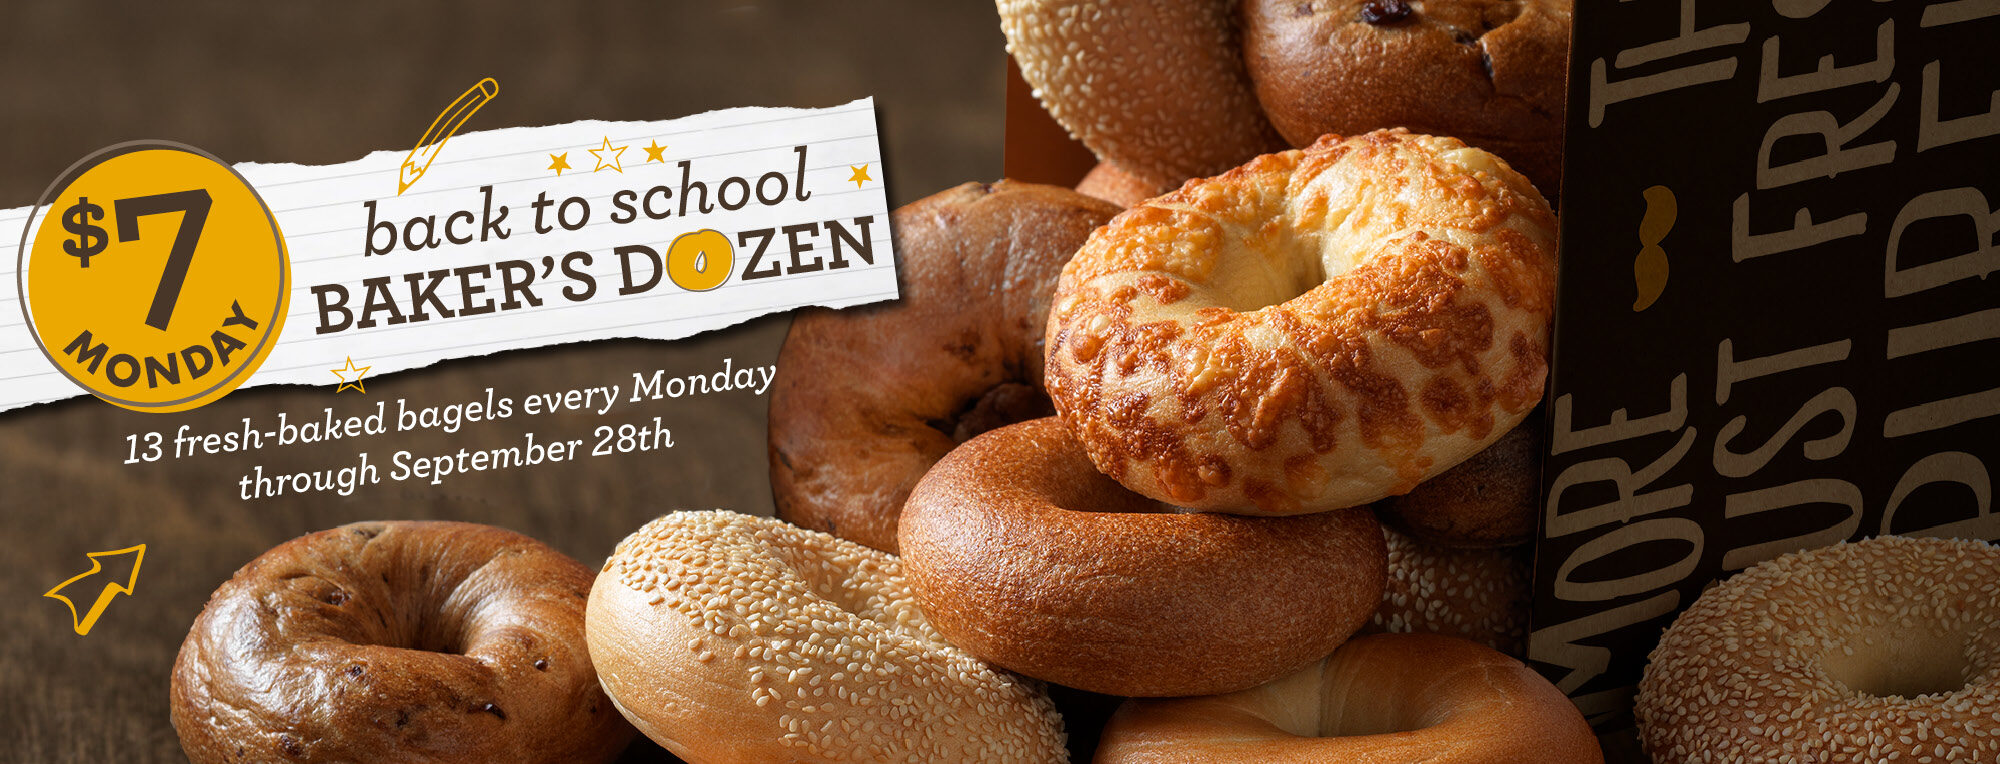 ROTATING SLIDER: $7 Monday (Available to everyone - not coupon required) Back to School Special - Mondays through September